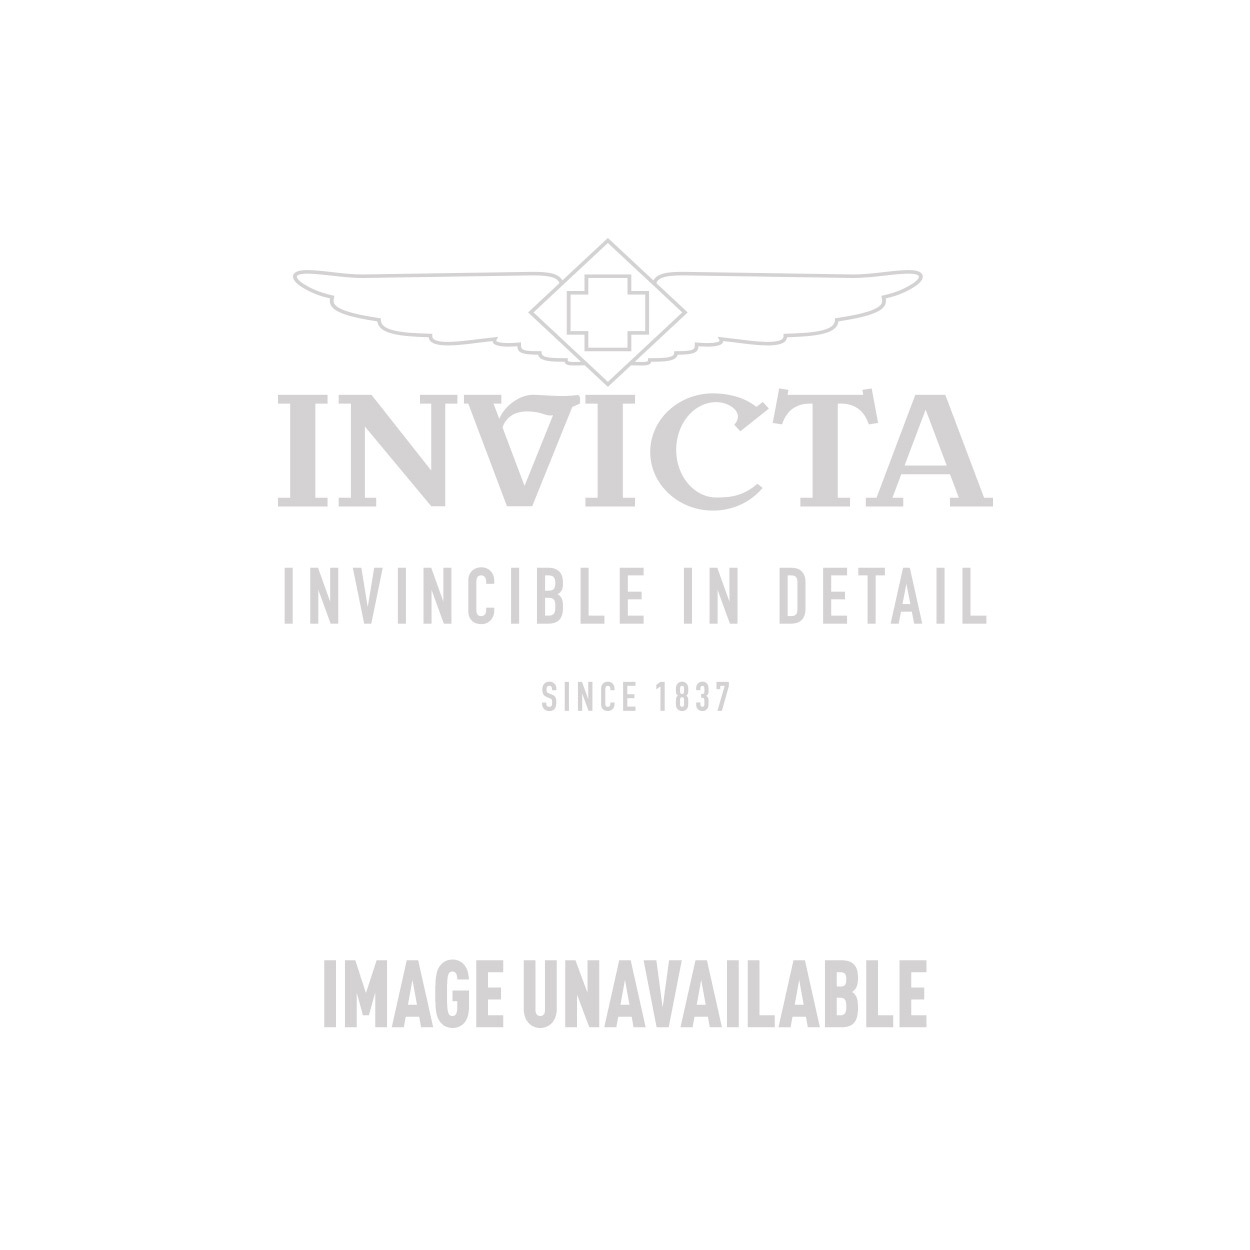 Invicta I-Force Quartz Watch - Stainless Steel case with Black tone Leather band - Model 12823